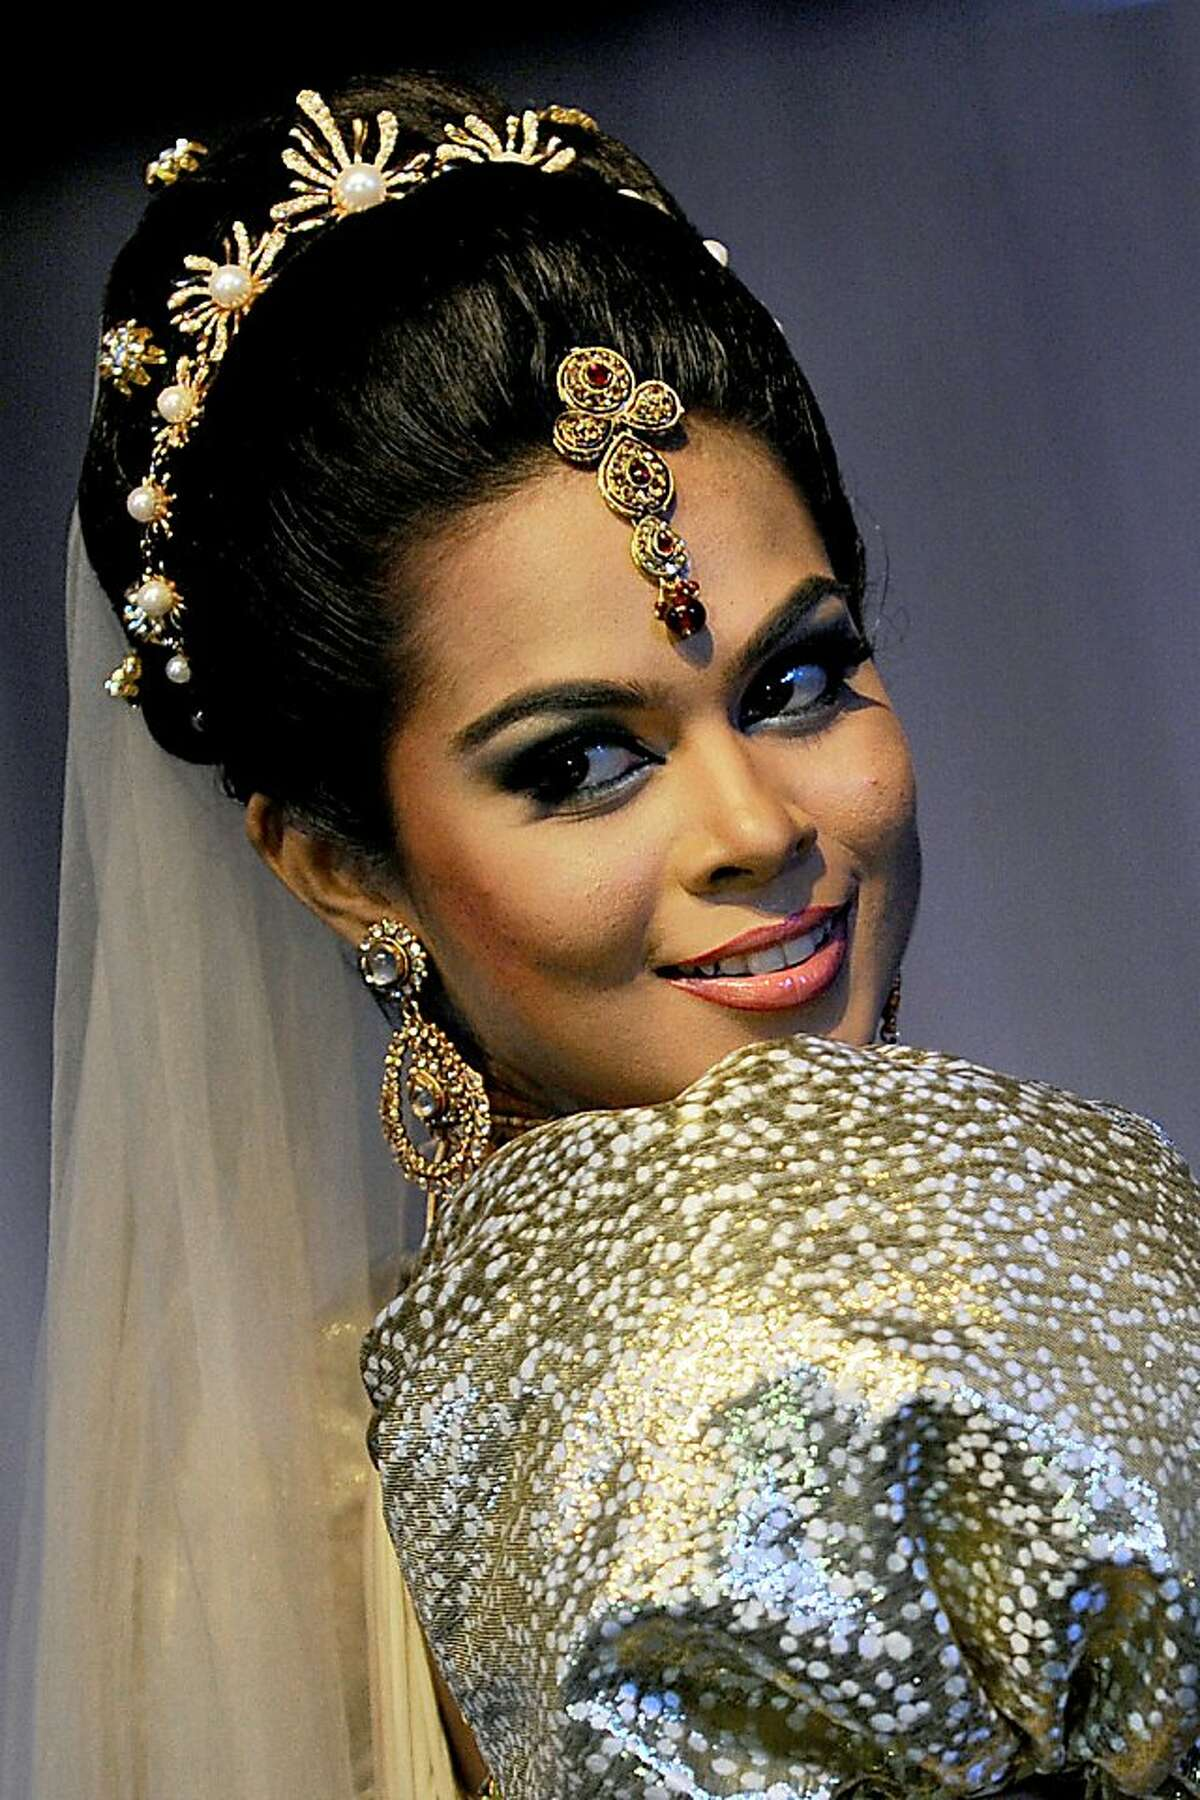 A Sri Lankan model shows off a bridal creation depicting a Sri Lankan bride during a fashion show in Colombo on September 22, 2013. Sri Lanka's economy recorded eight percent plus growth rates for two years running after security forces crushed Tamil Tiger rebels and declared an end to decades of ethnic war in May 2009. AFP PHOTO/ Ishara S. KODIKARAIshara S.KODIKARA/AFP/Getty Images